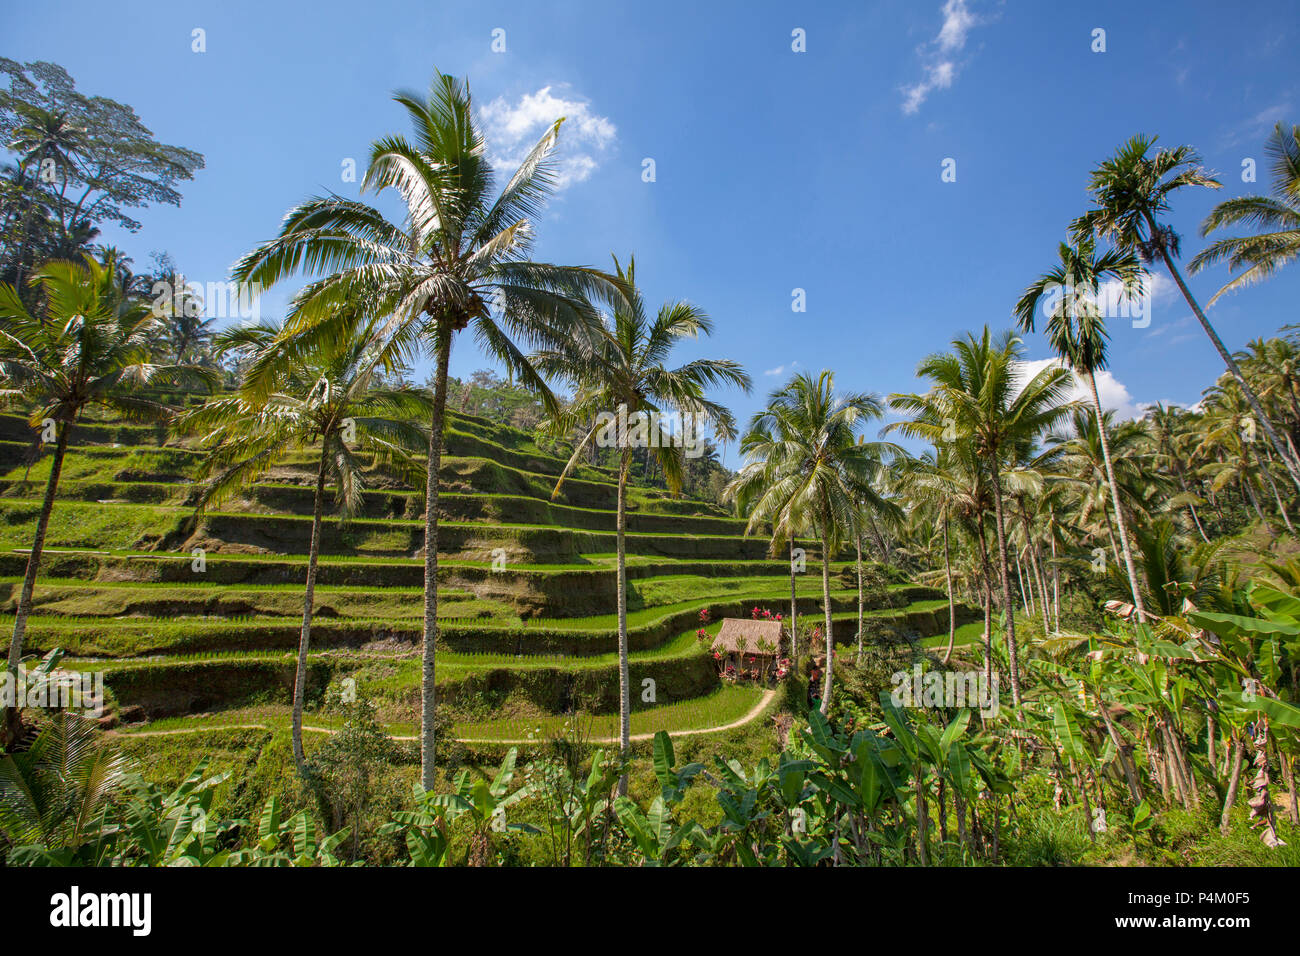 Rice terraces in Tegallalang. Ubud, Bali, Indonesia - Stock Image